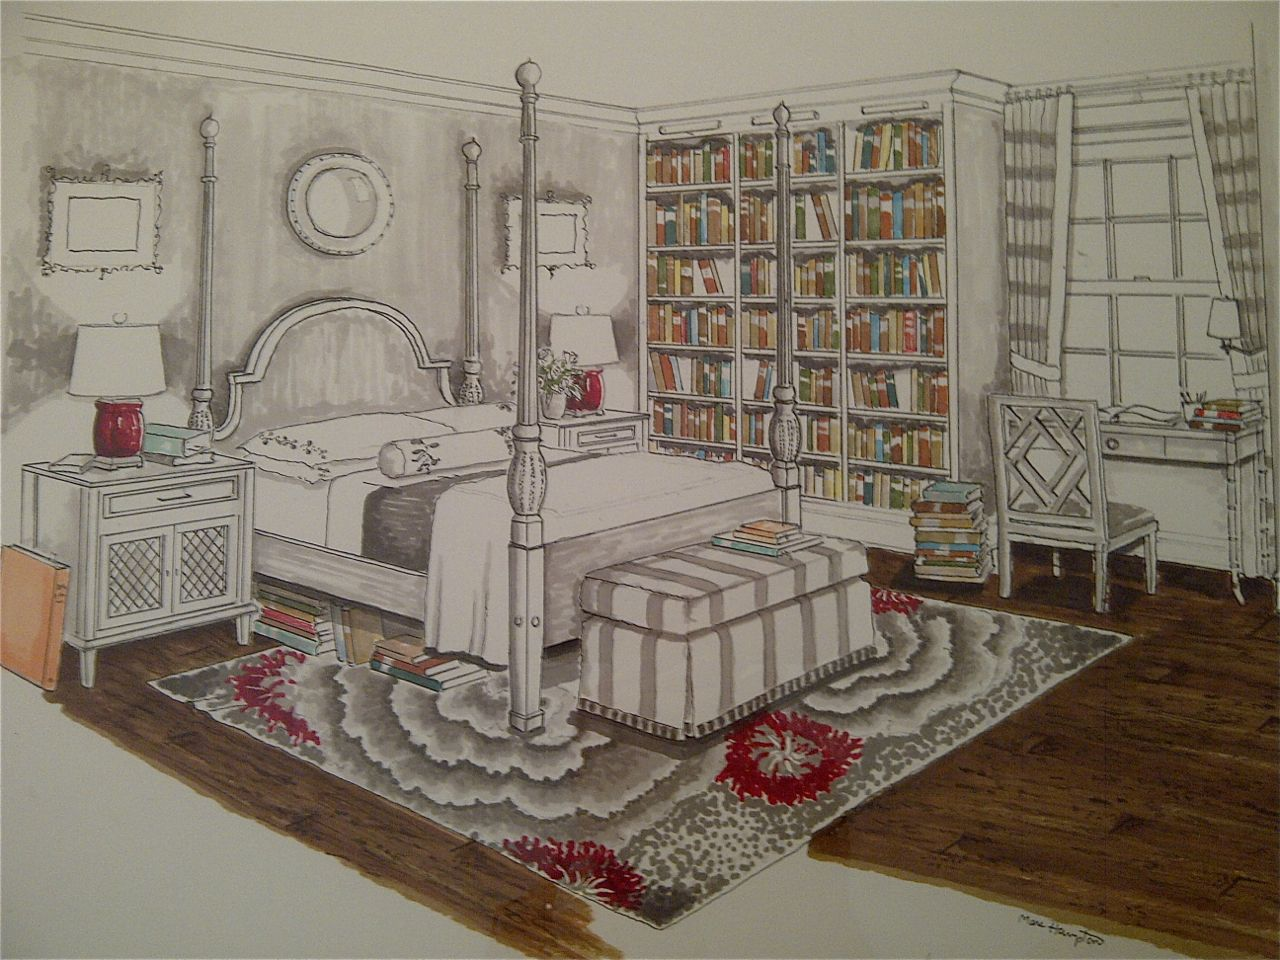 Perspective Drawings Of Bedrooms Find This Pin And More On Interior Design Sketches